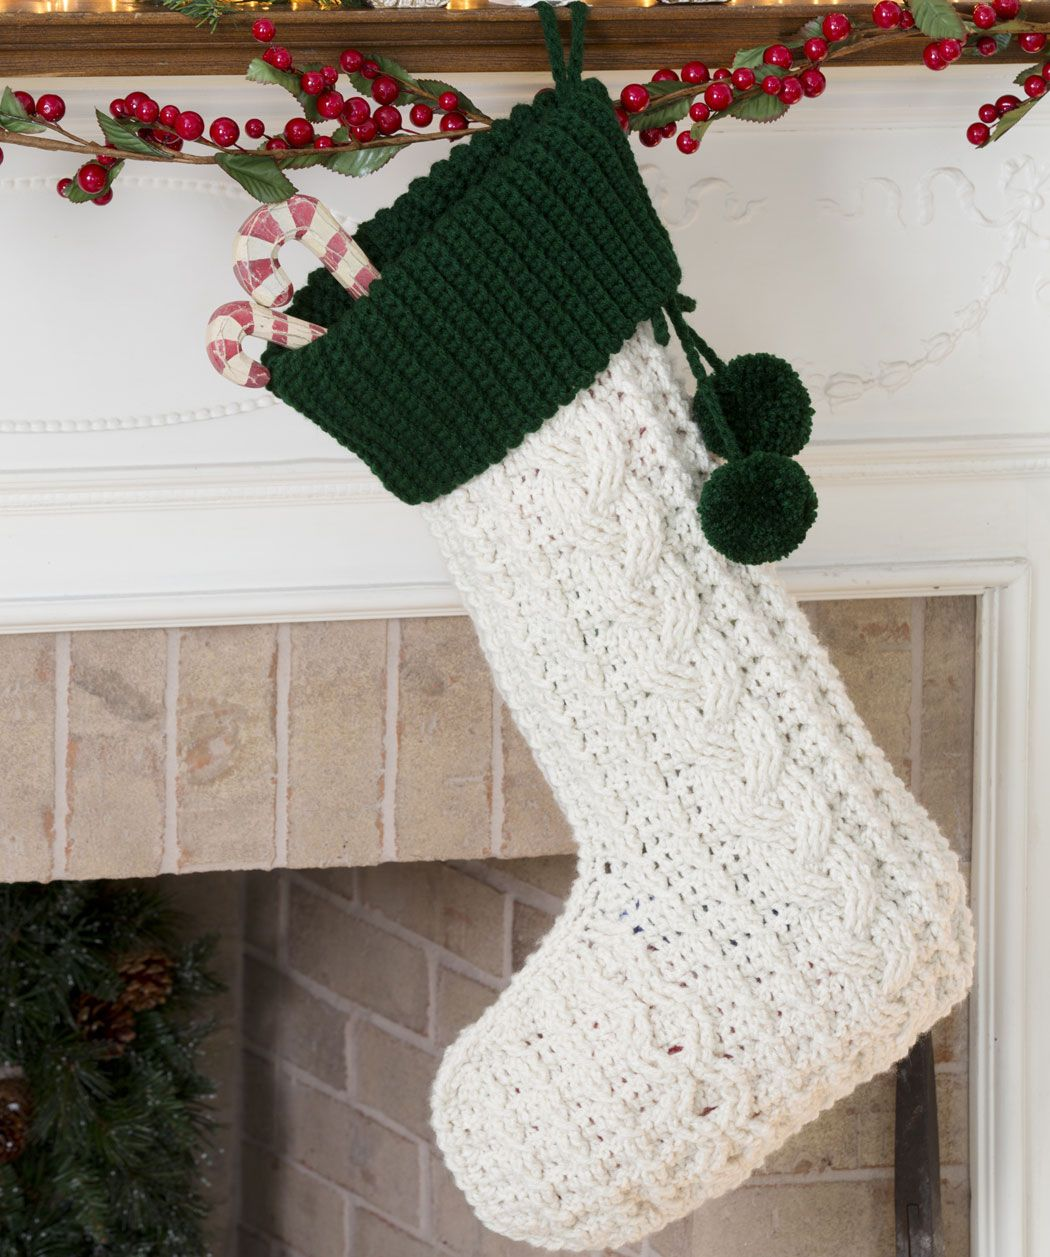 Crocheted Cable Christmas Stocking Elegant Aran stitches create ...